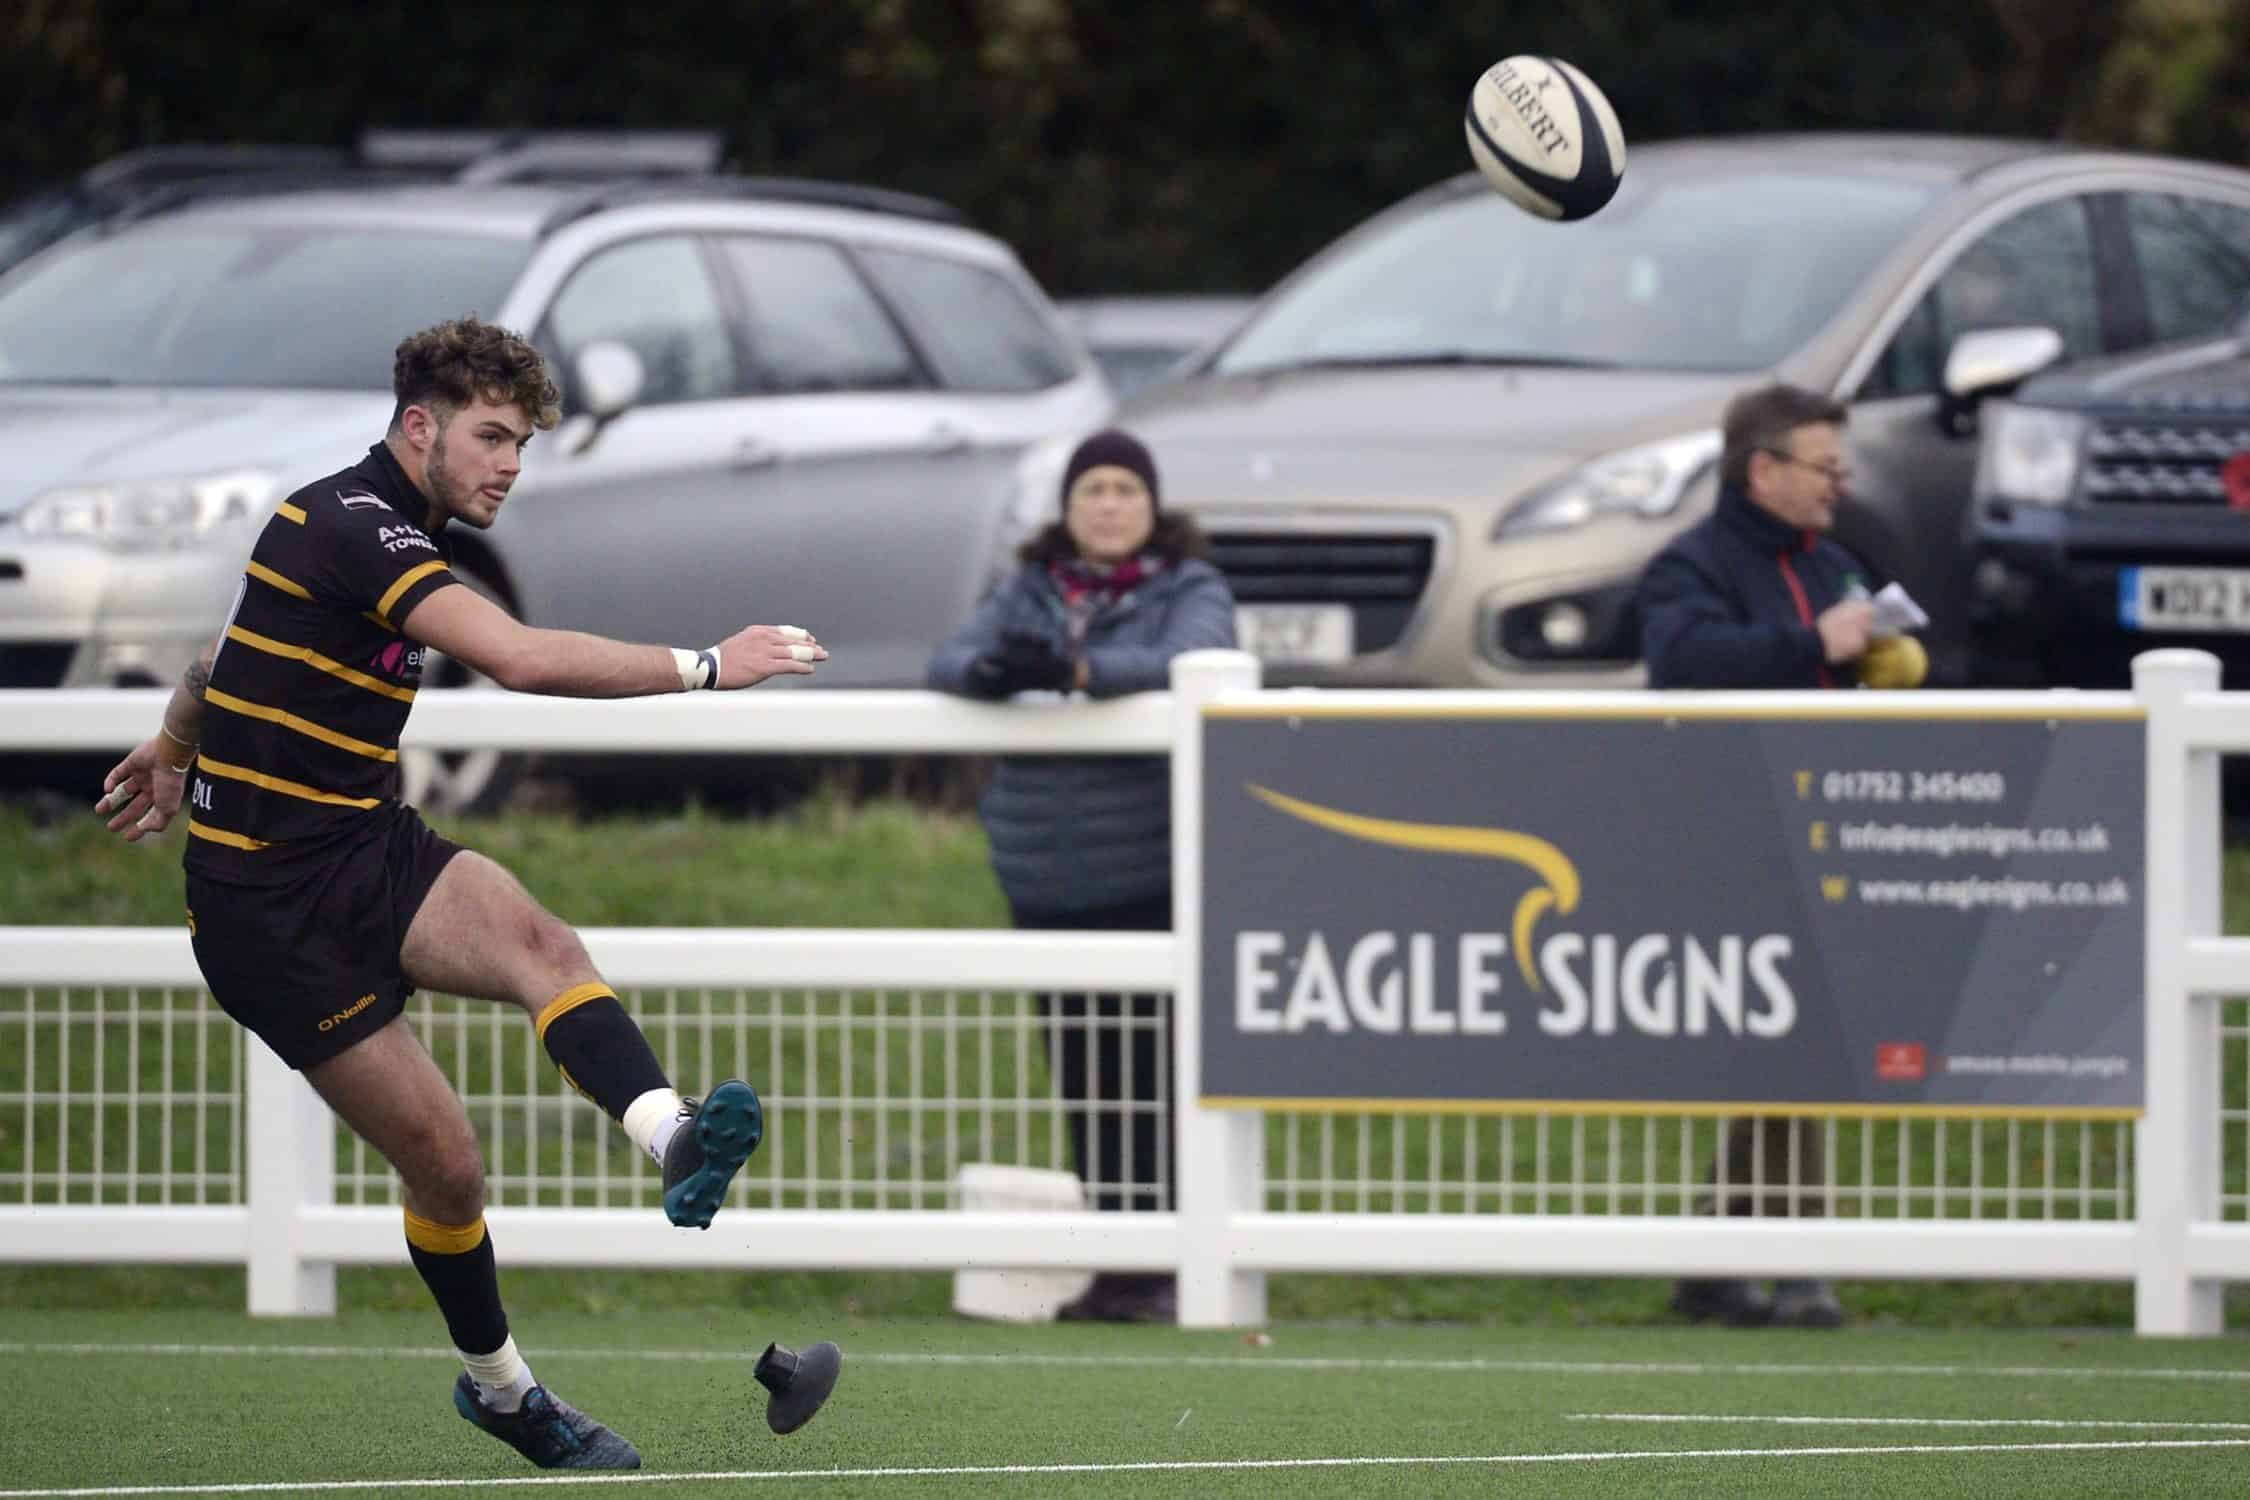 Cornwall U20s v Devon U20s, Ivybridge UK – 26 January 2020